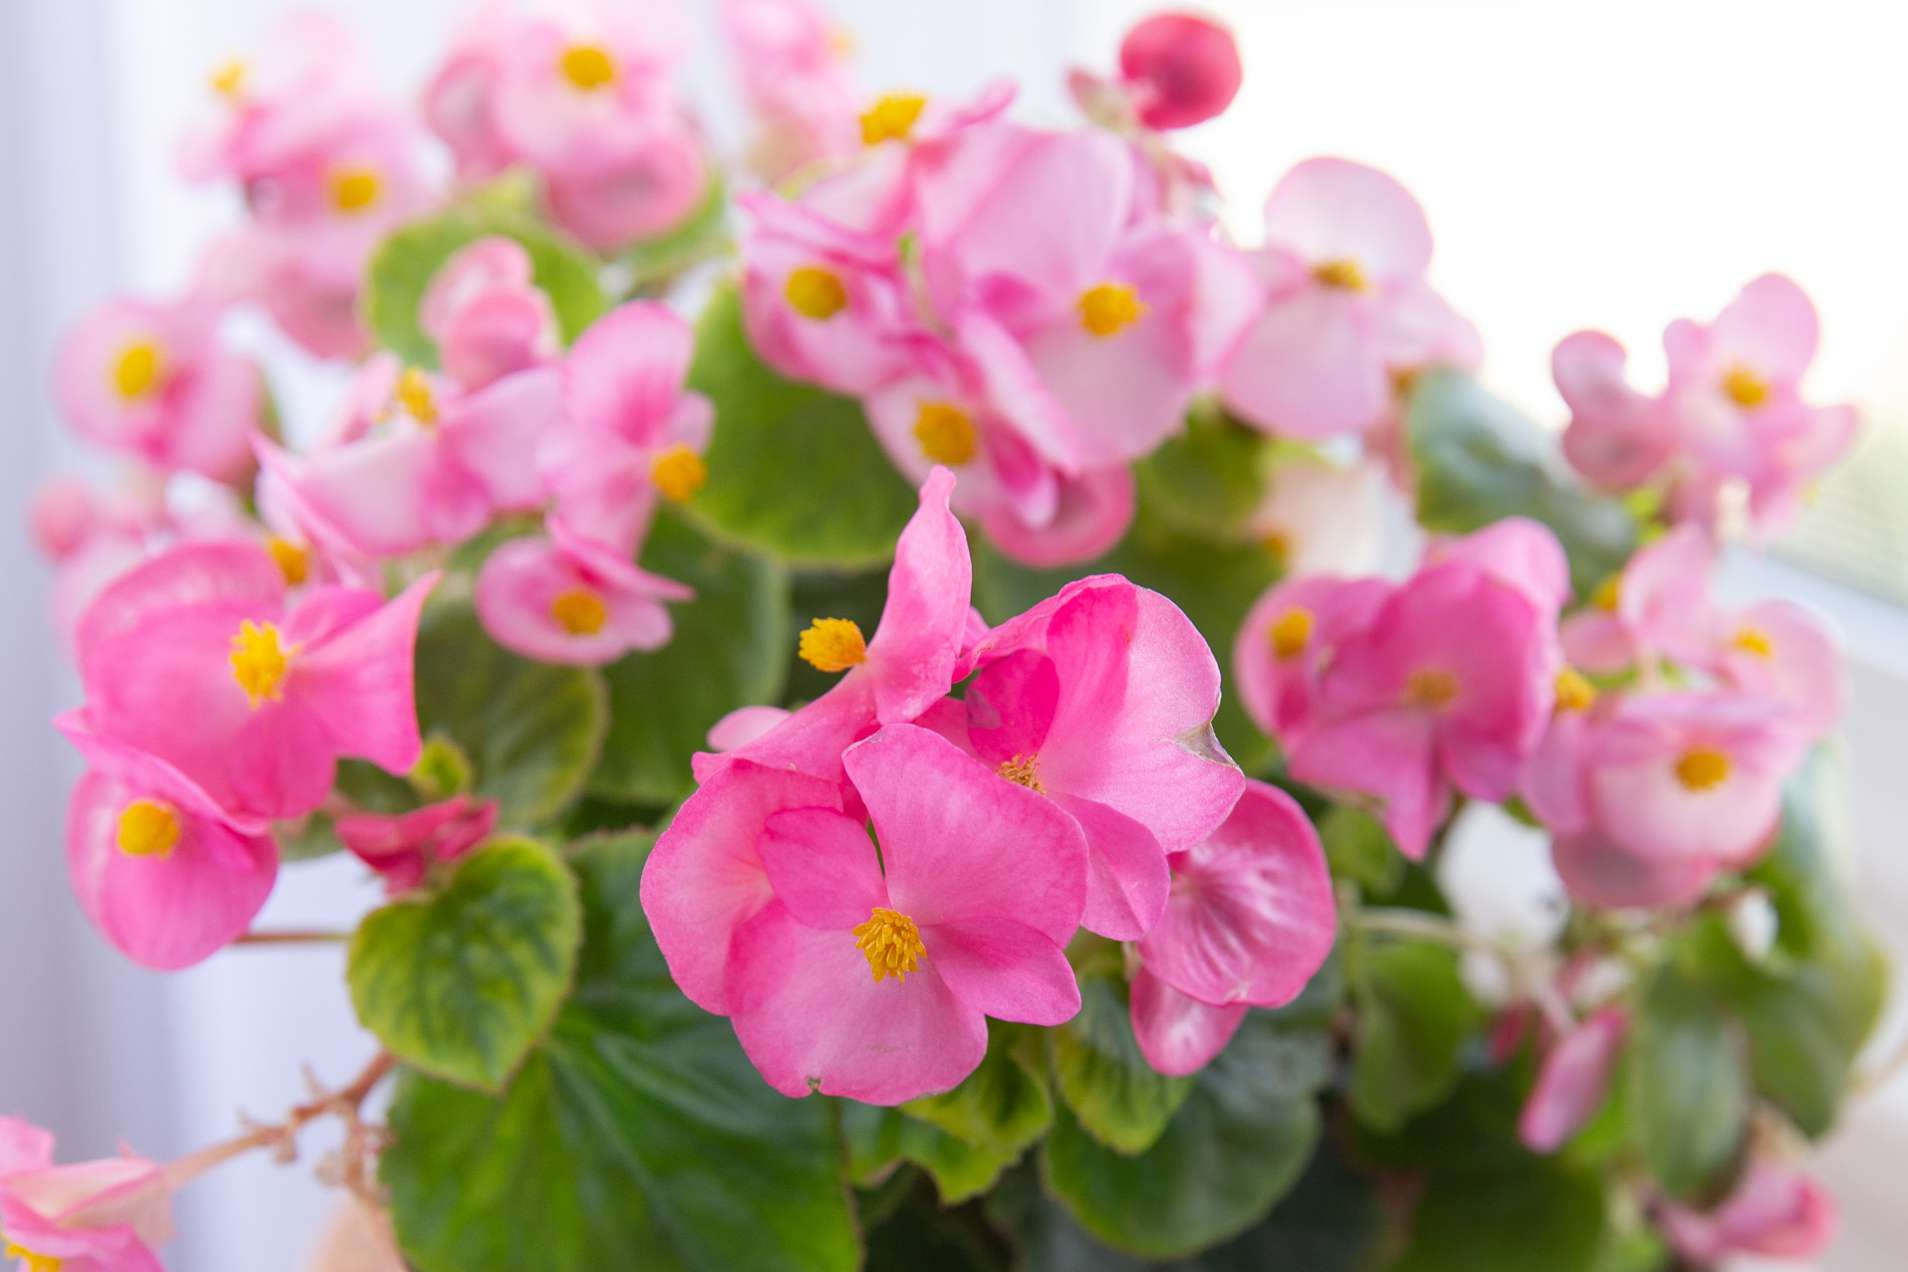 Rieger begonias in a vibrant pink hue